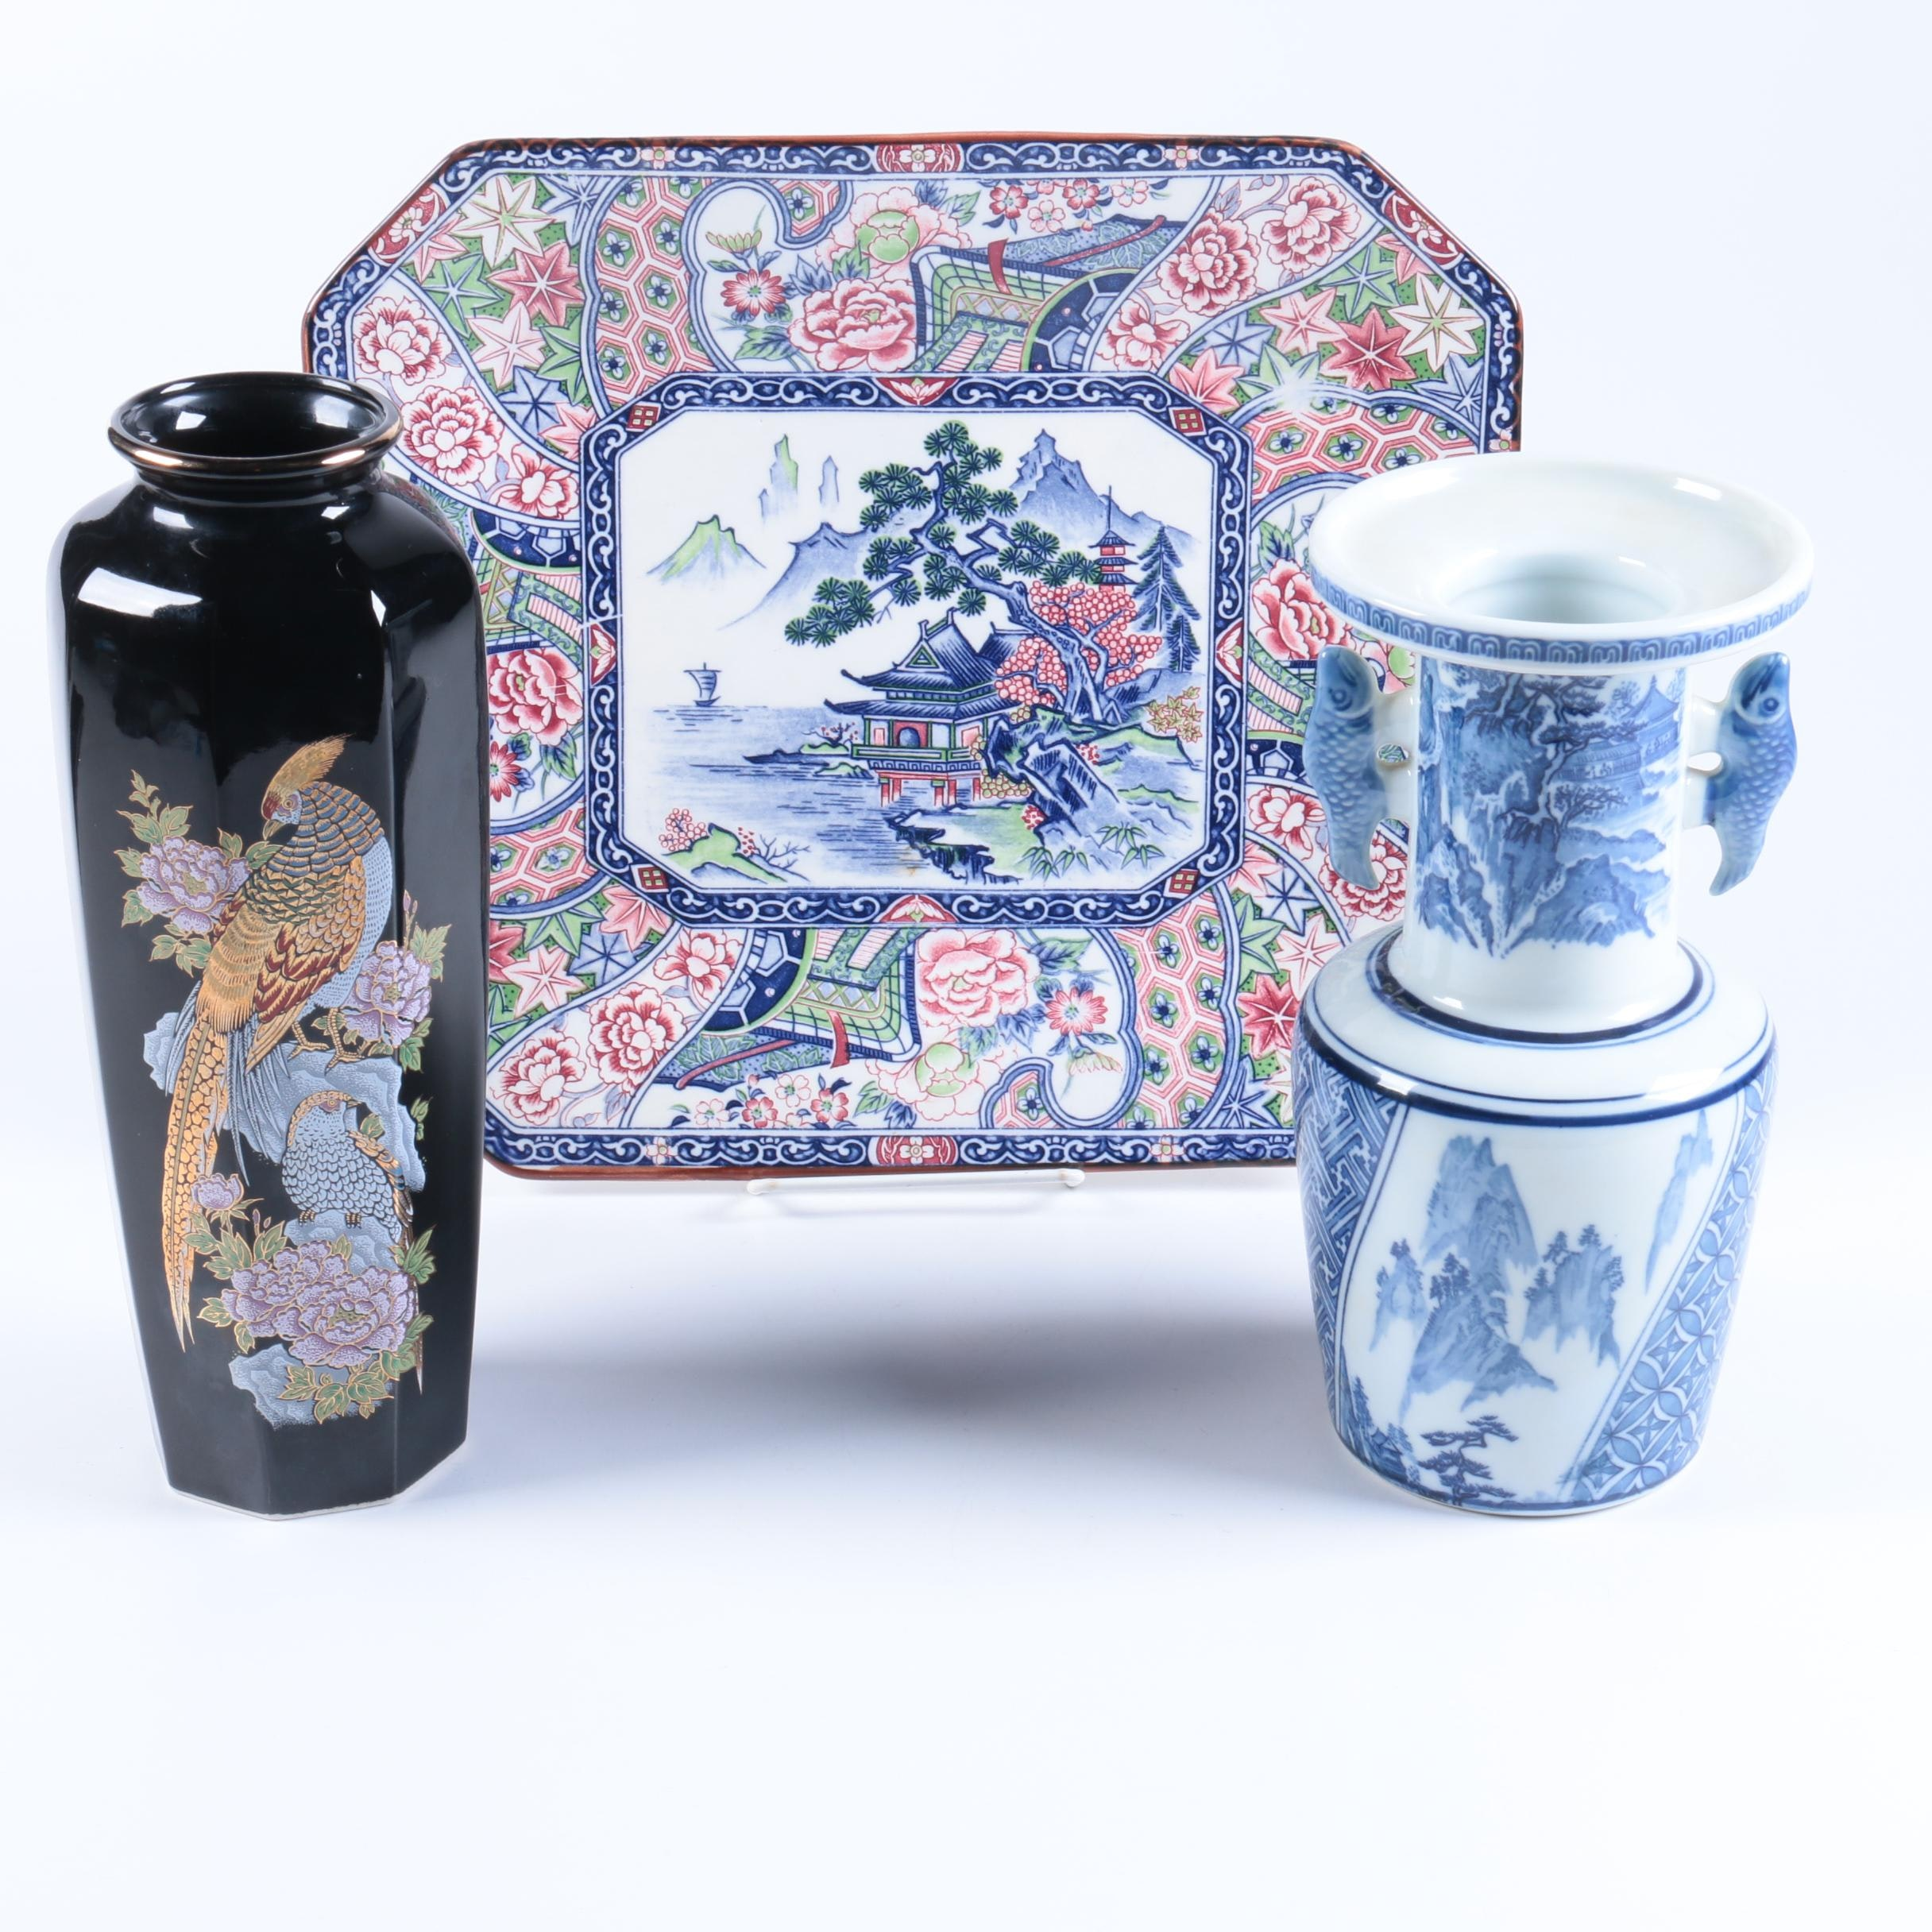 Japanese Porcelain Vases and Tray